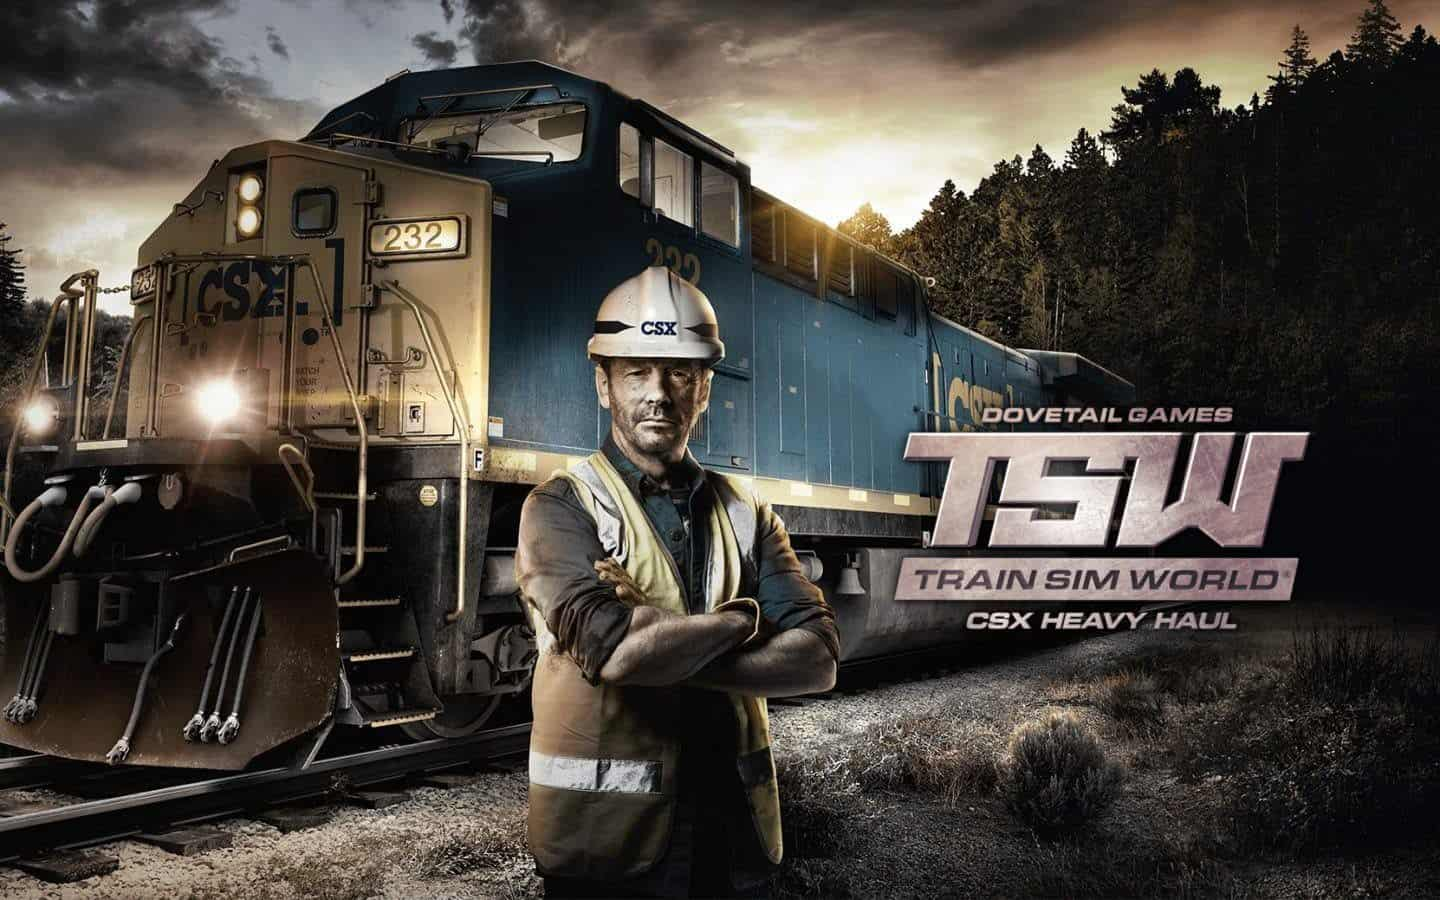 TSW Train Sim World: CSX Heavy Haul PC Latest Version Game Free Download